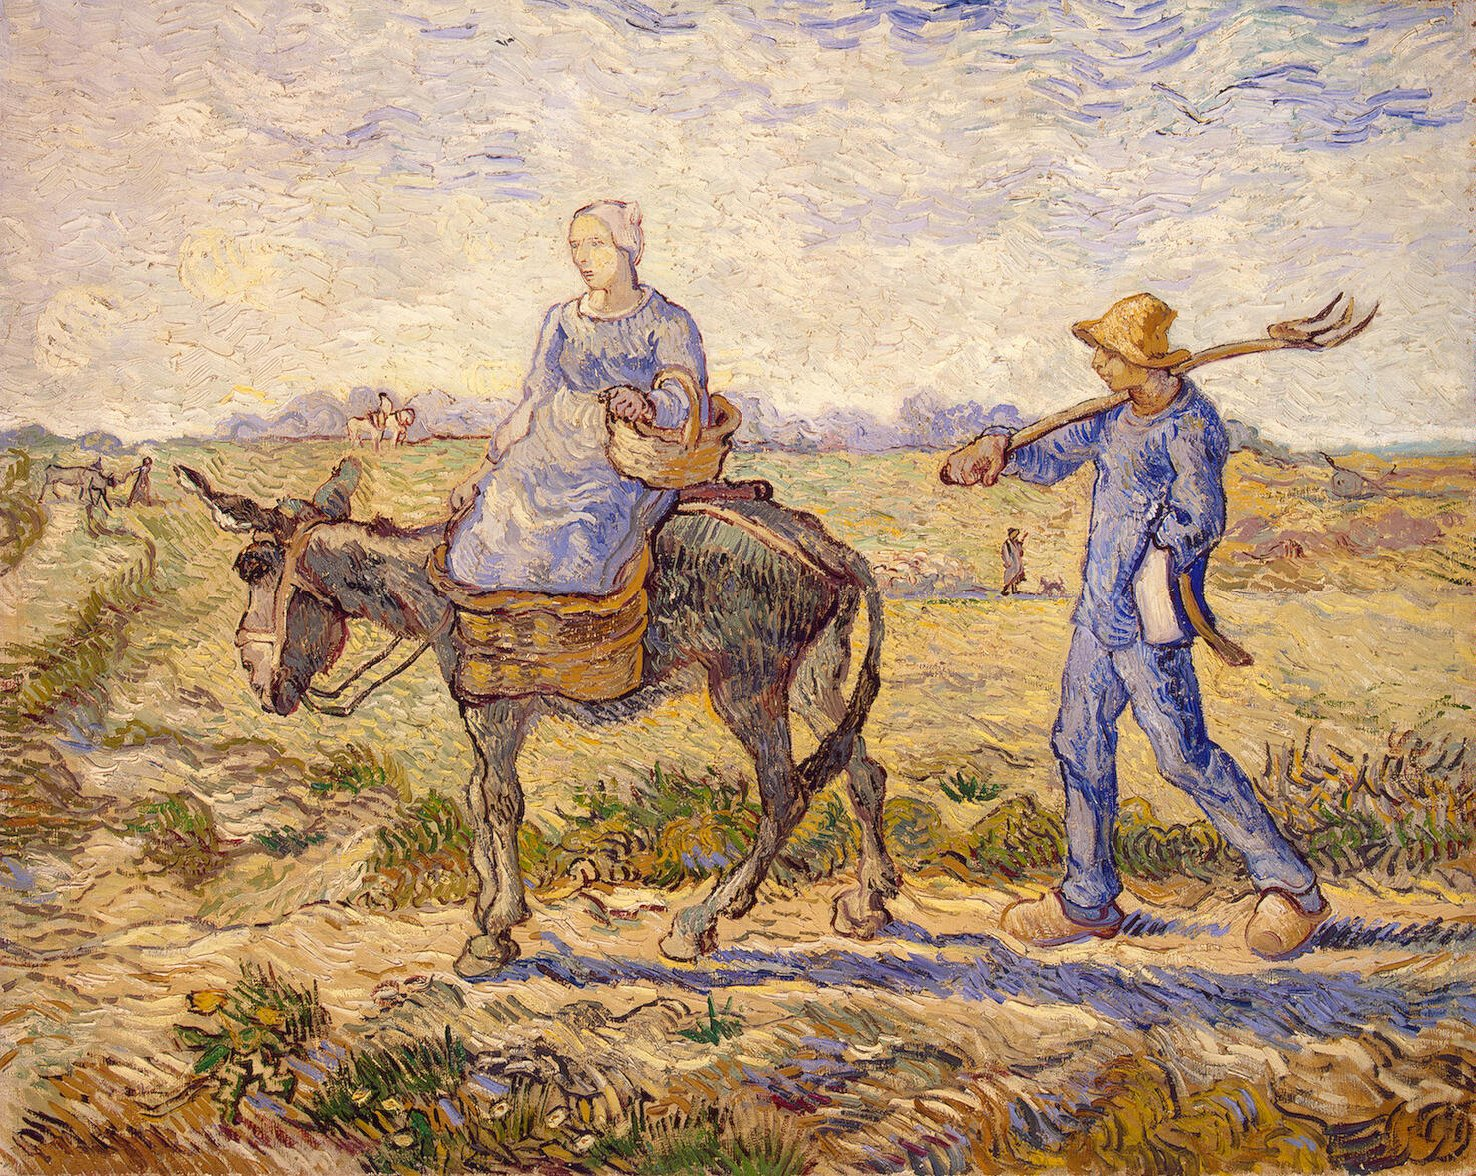 the life and works of vincent van gogh Van gogh: the life, a biography of the painter written by steven naifeh and gregory white smith in 2011, raised eyebrows over van gogh's death when it suggested he may have been killed the book.